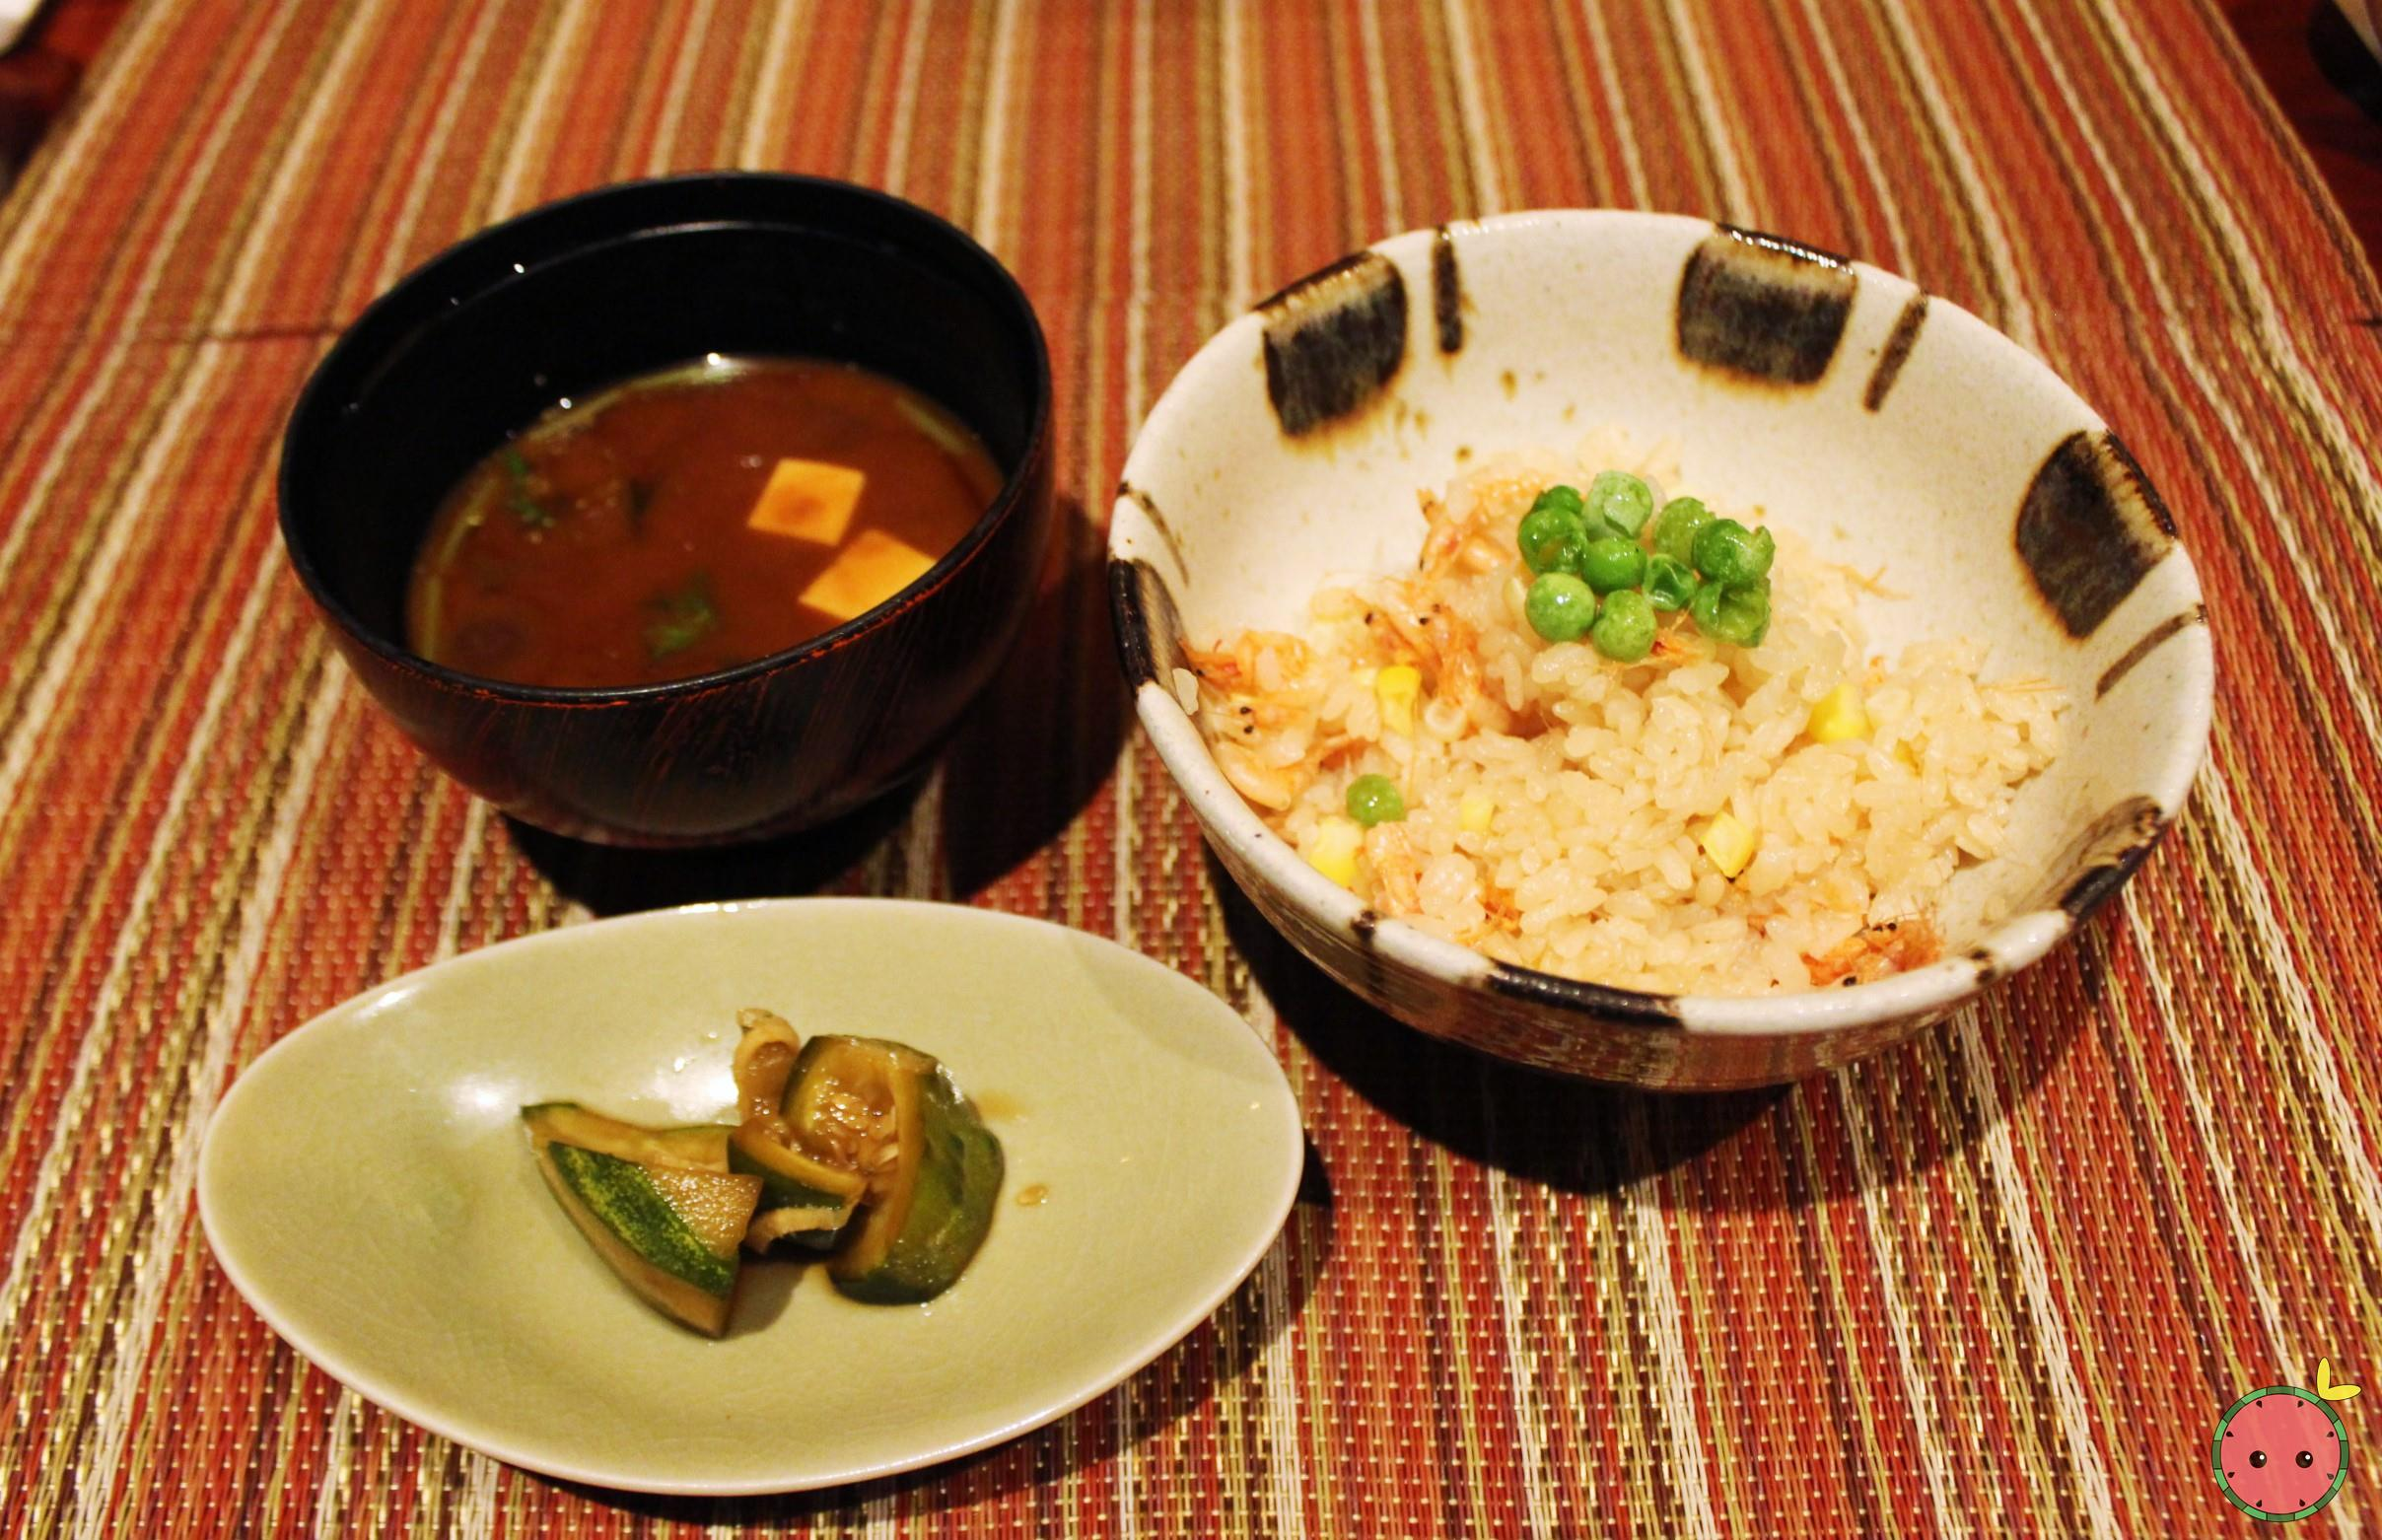 Oshokuji - Sakura shrimp and Peter corn Kamadaki rice with red miso soup and pickles